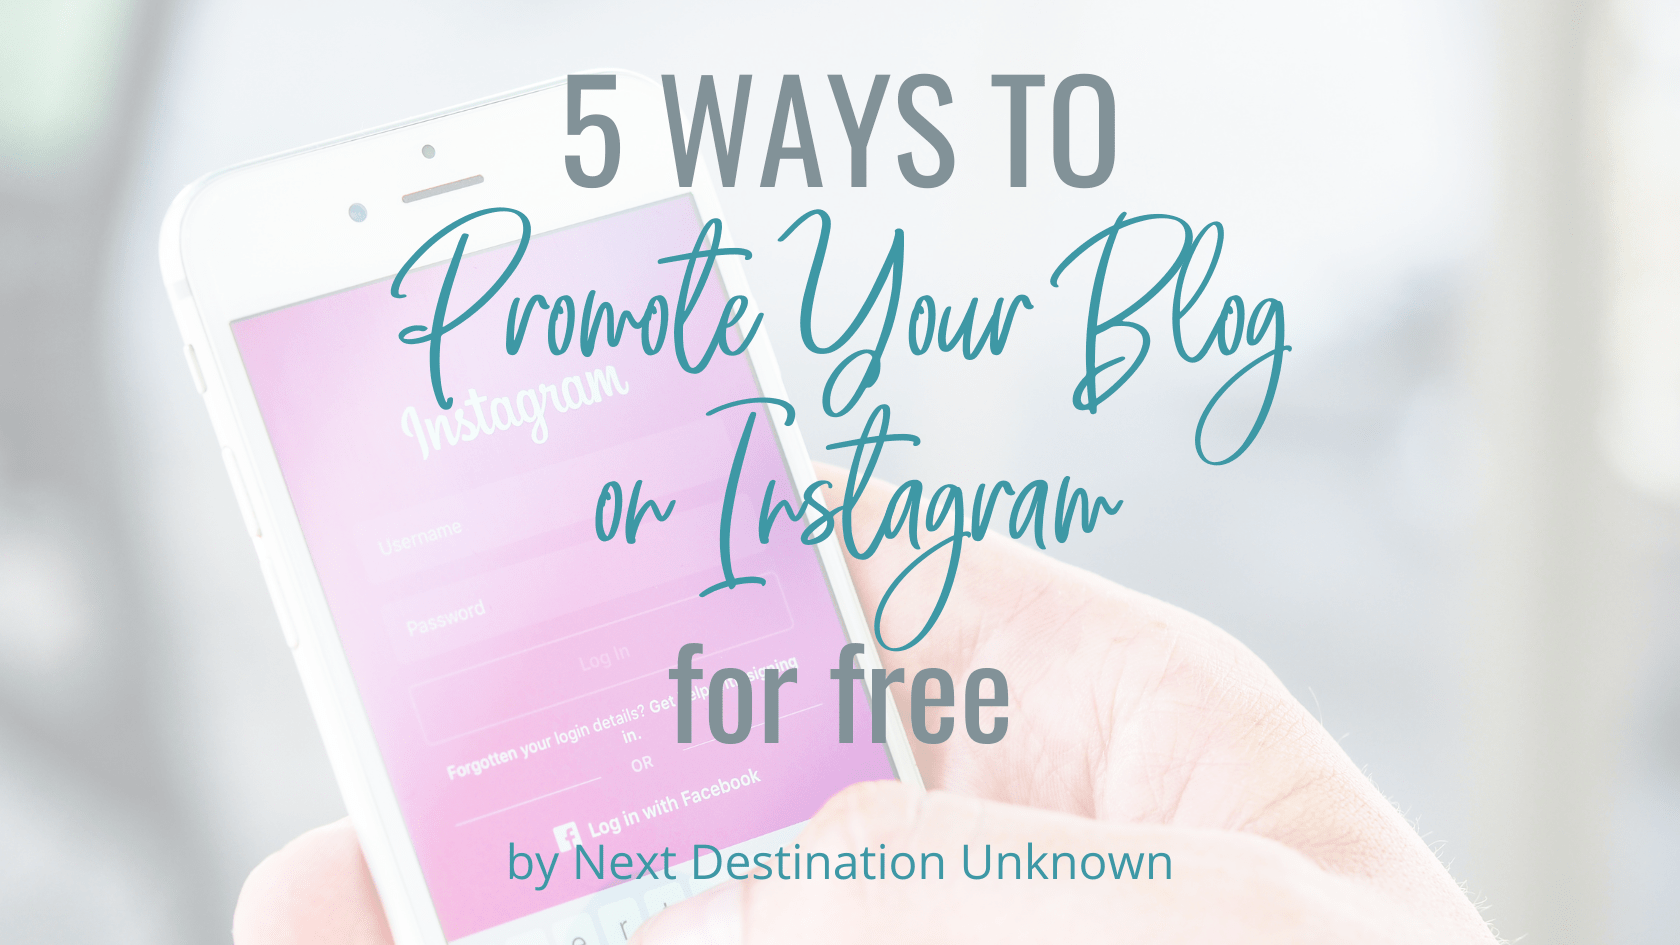 5 Creative Ways to Promote Your Blog on Instagram for Free